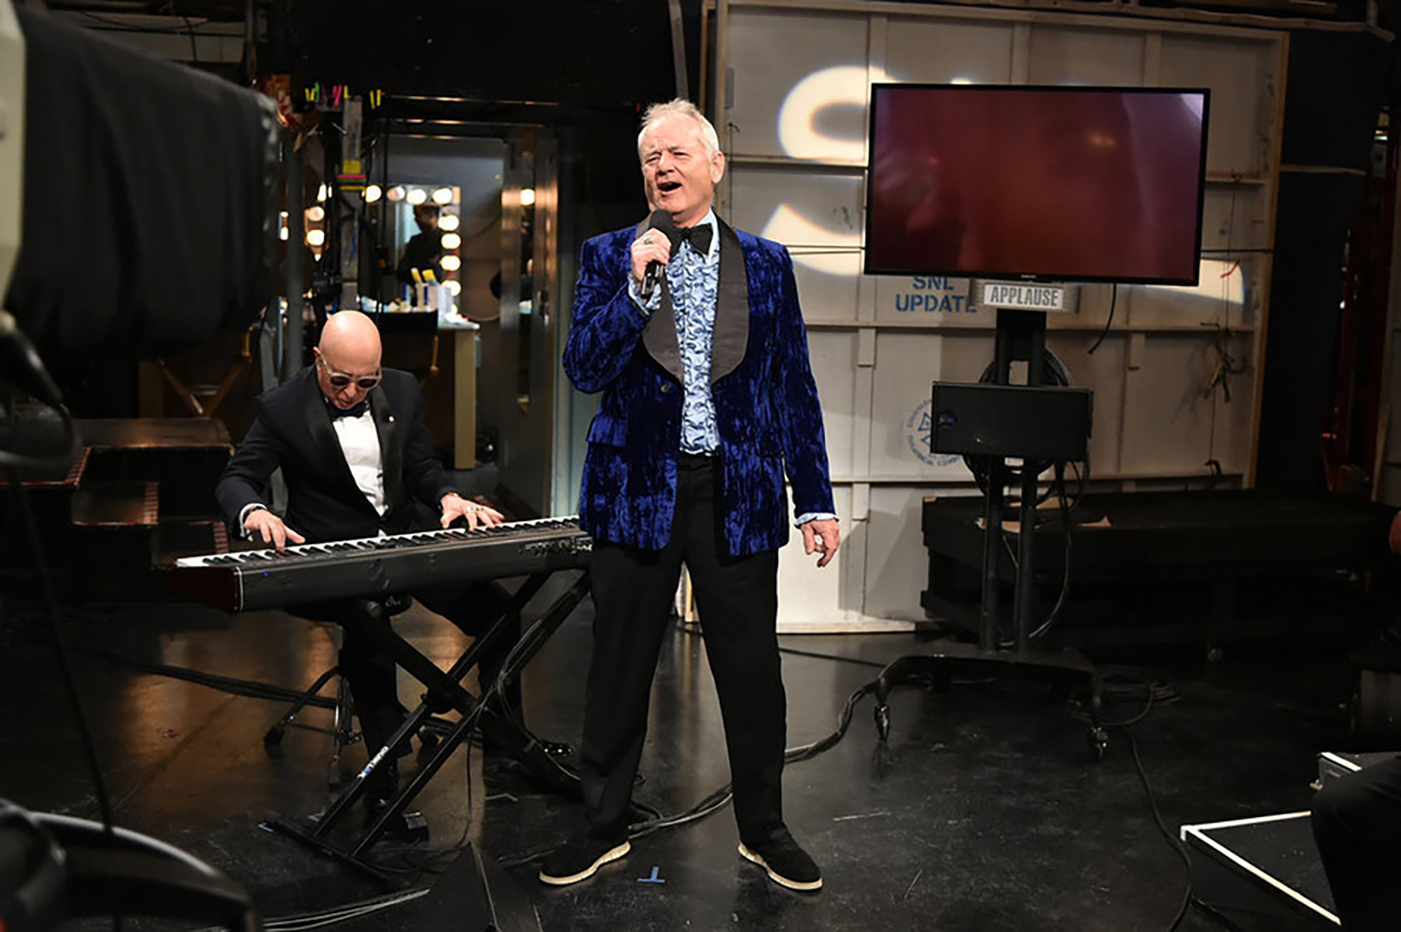 Watch Bill Murray Sing the 'Jaws' Theme on 'SNL 40